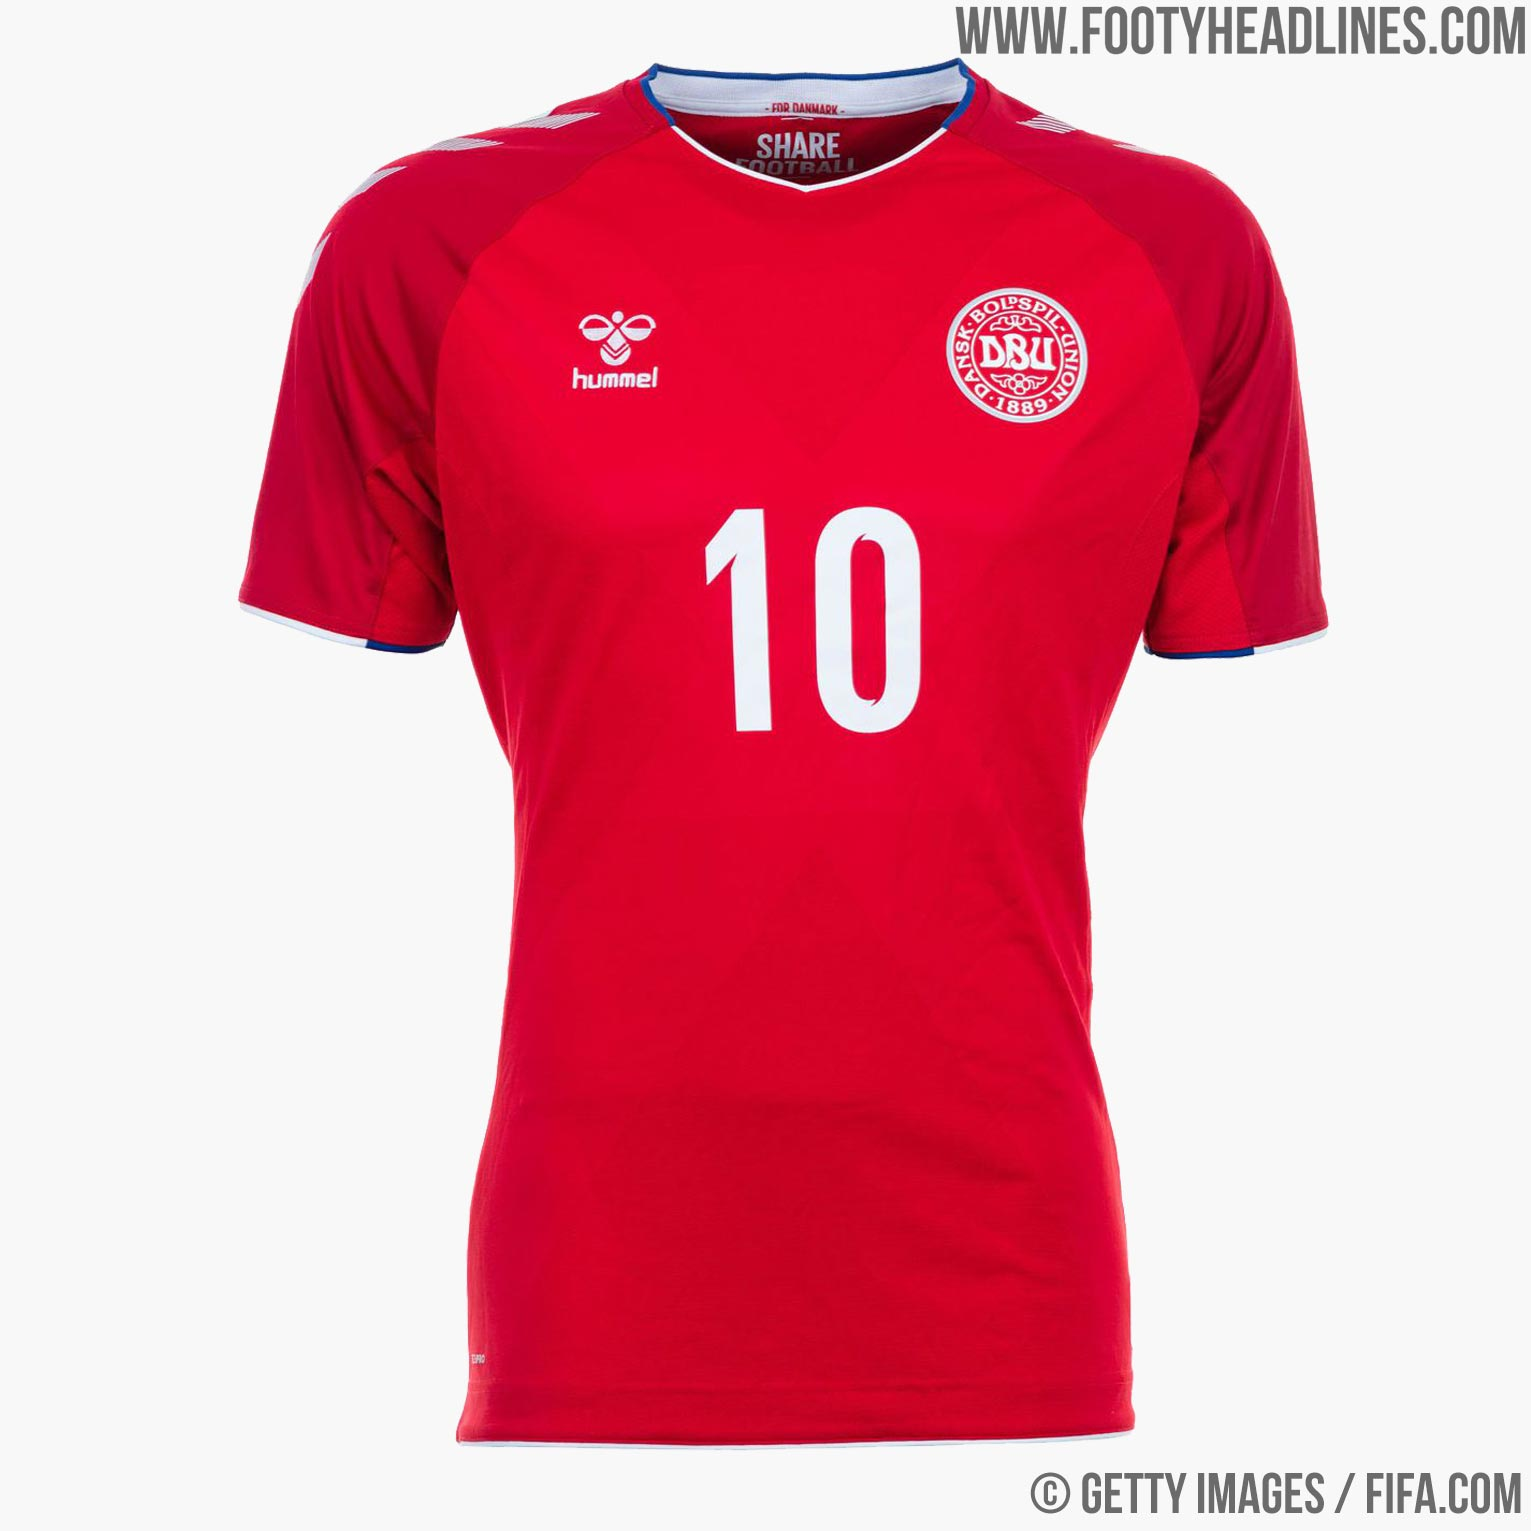 169d51d48 Denmark Home Shirt 2018. Buy now. Free worldwide delivery on all orders